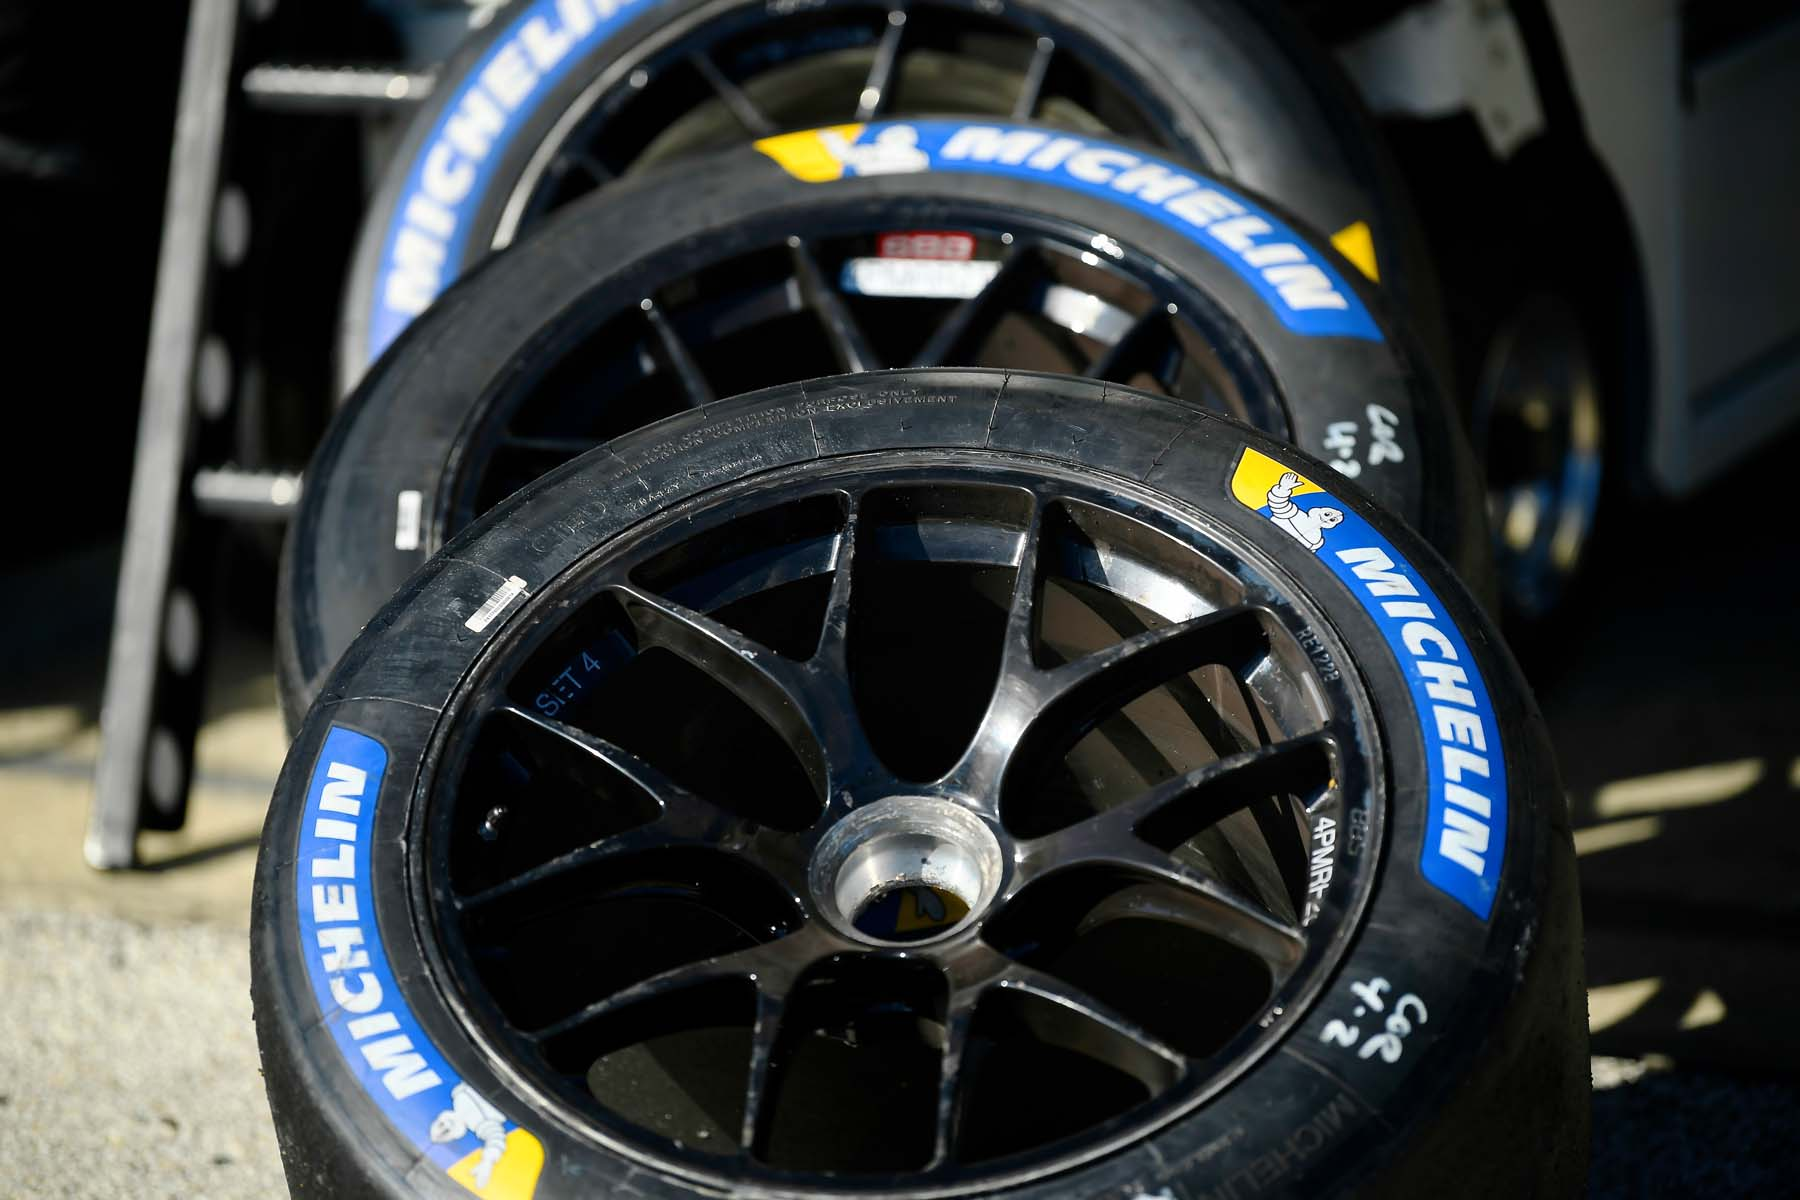 imsa_daytona_19_roar_michelin_assets13